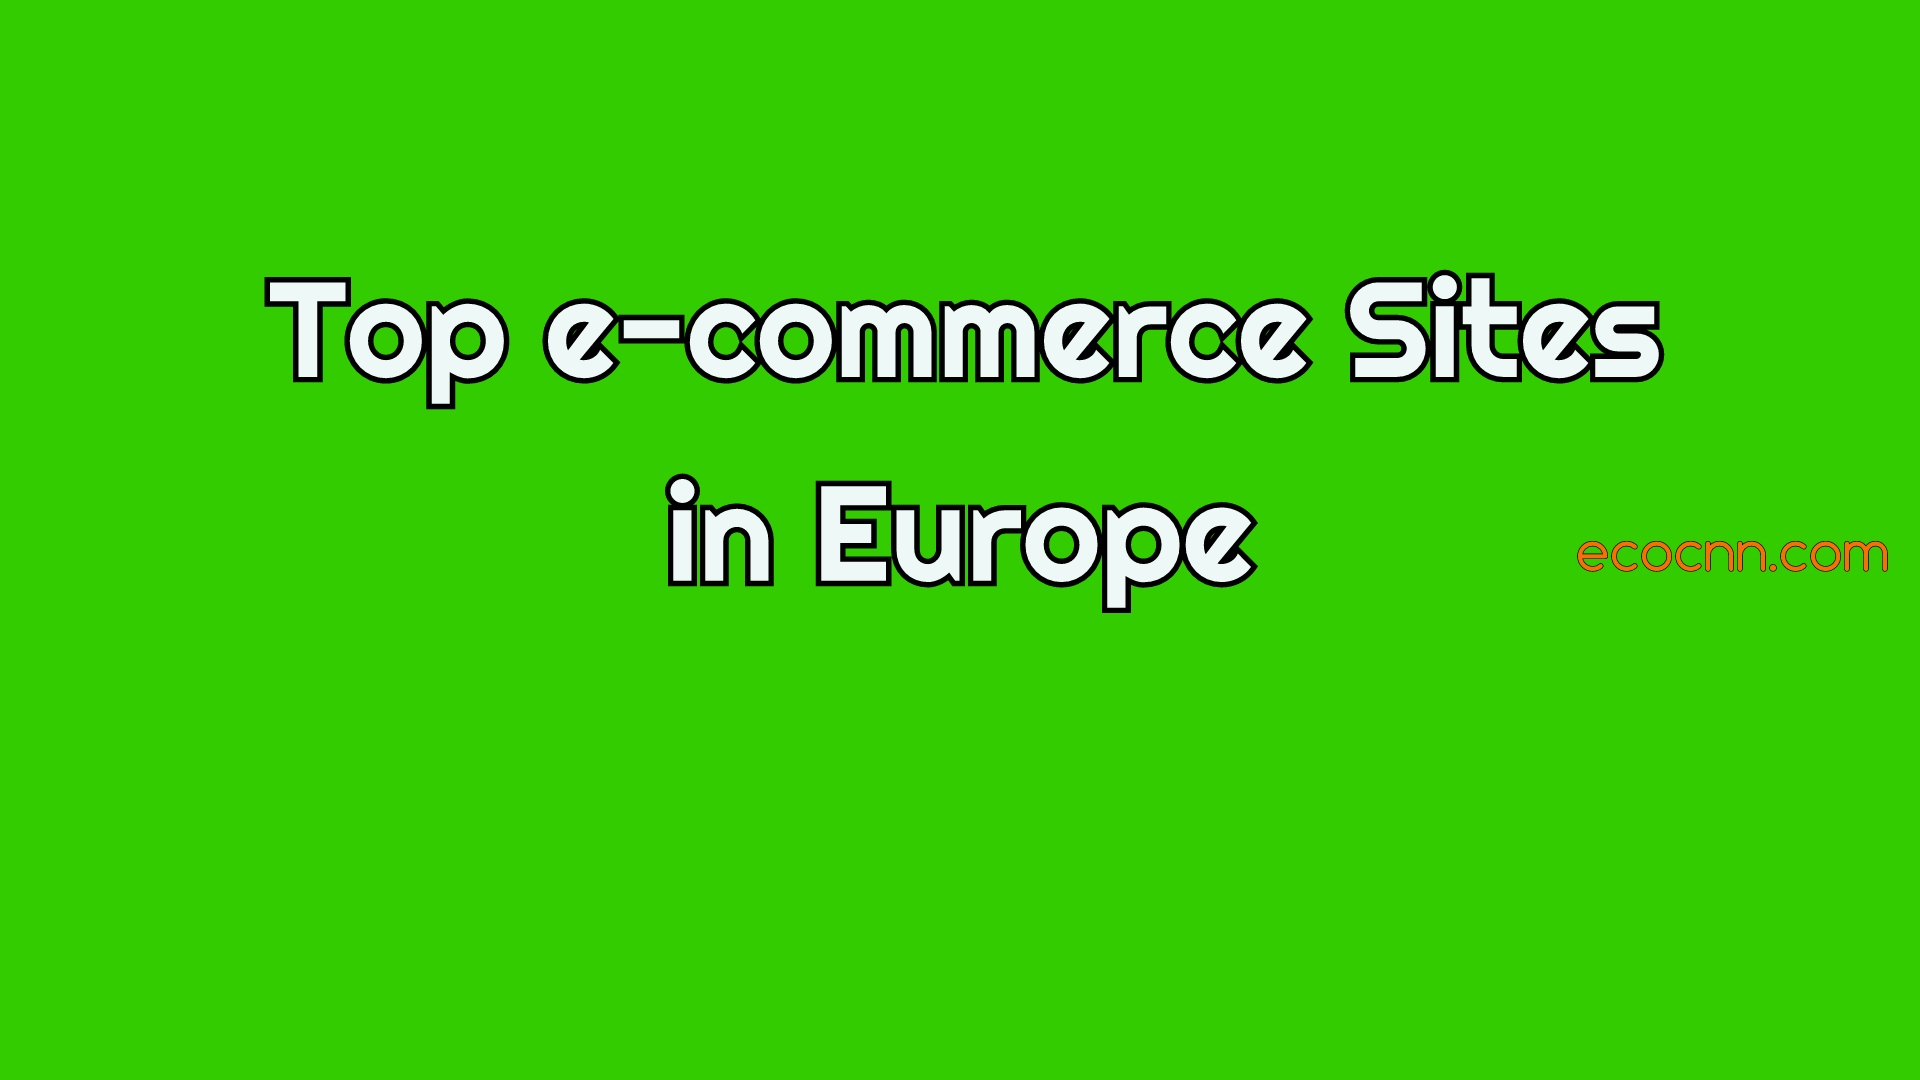 Top Ecommerce websites in Europe 2021 Largest Companies